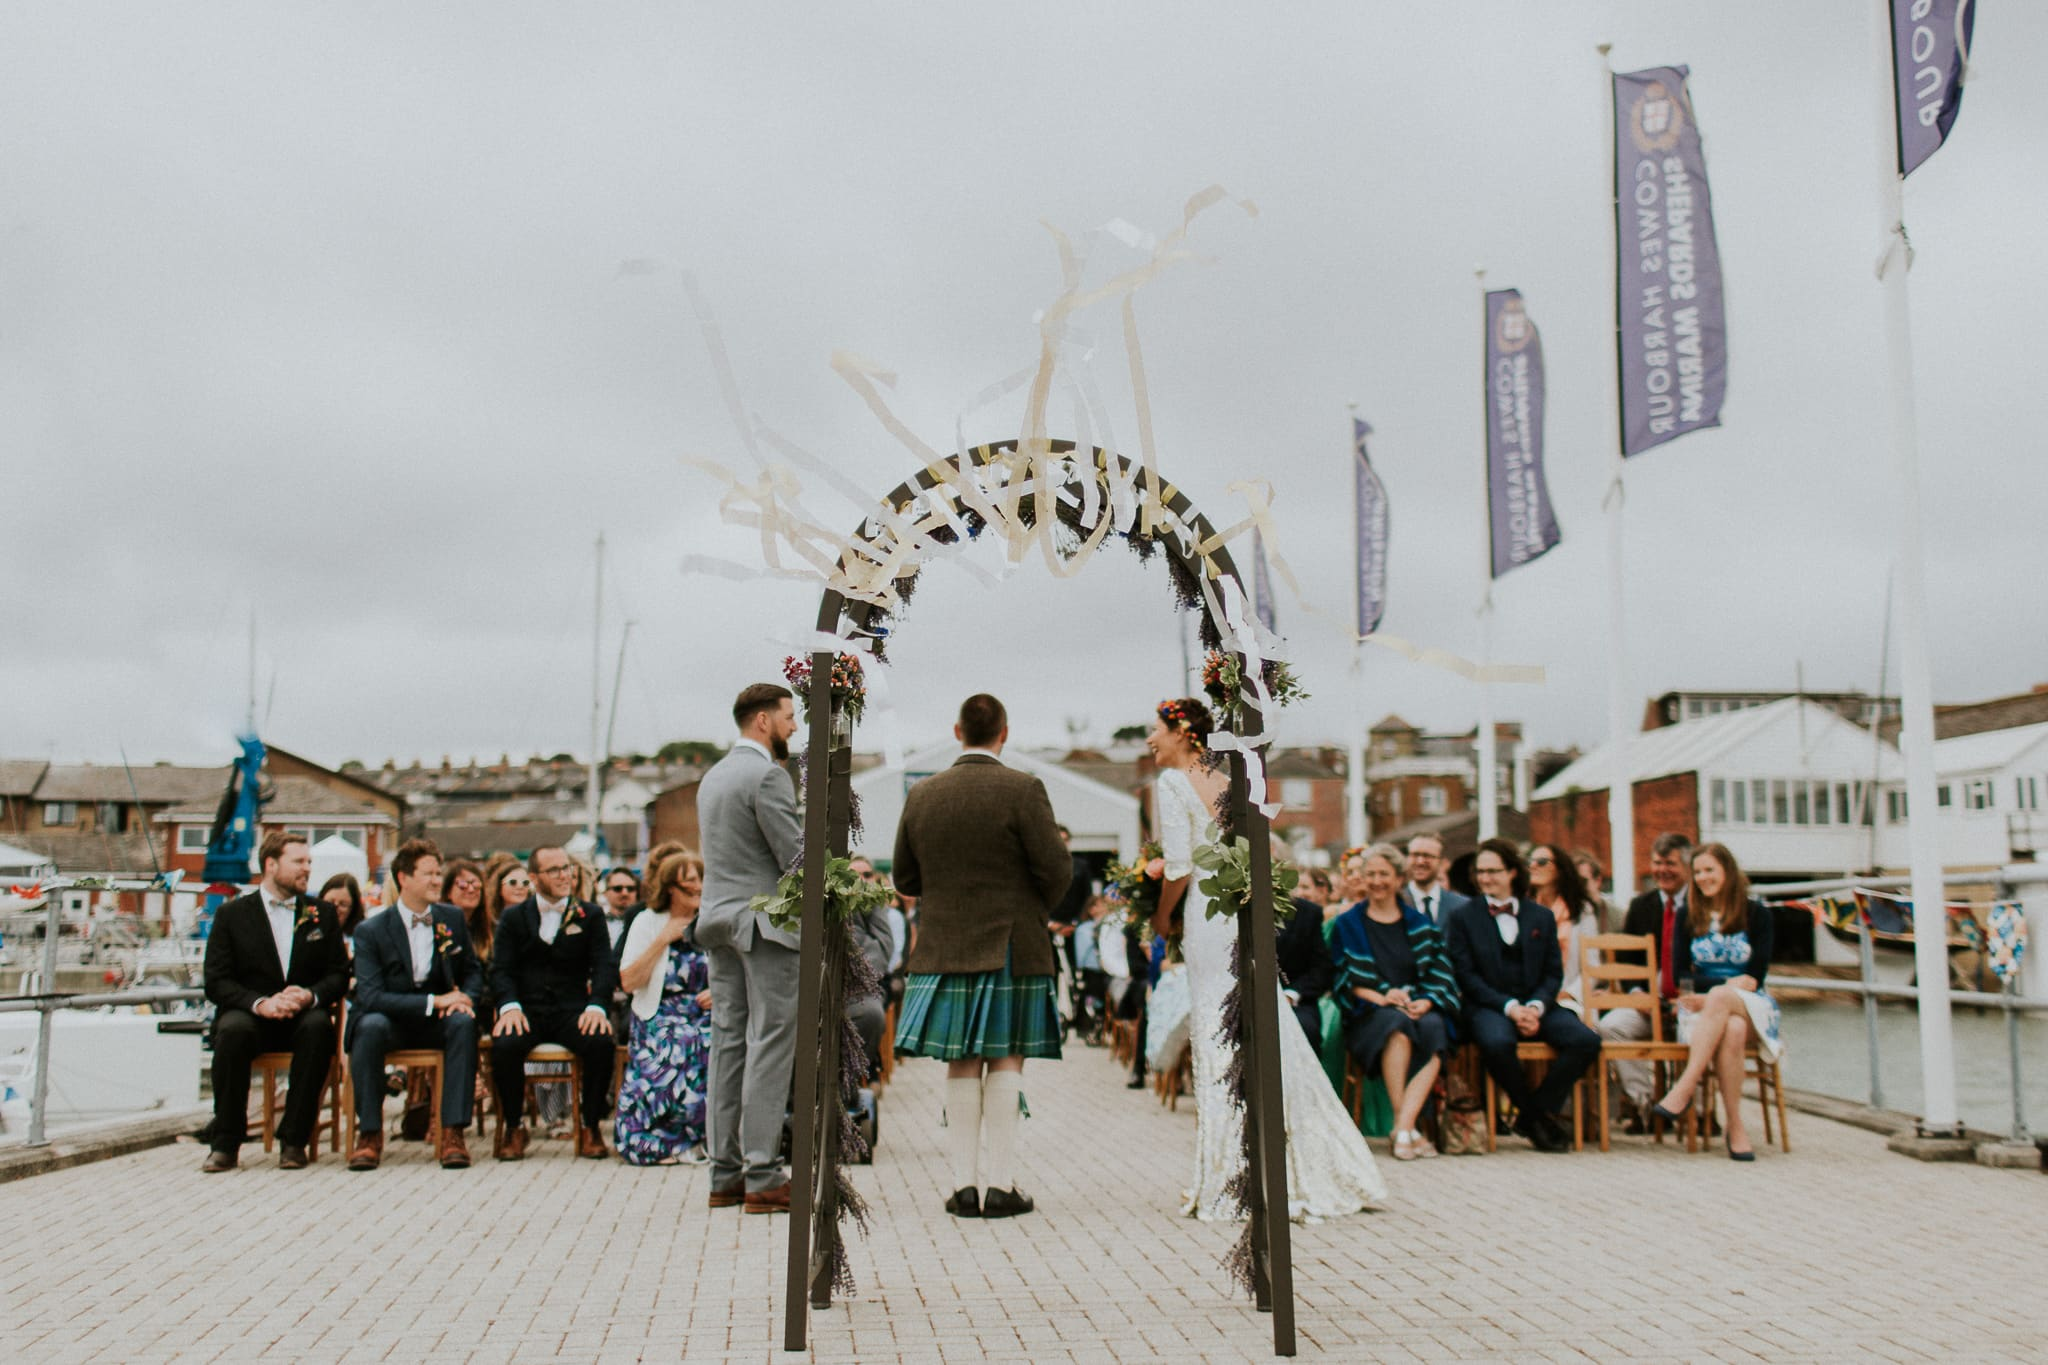 wedding ceremony on a pier